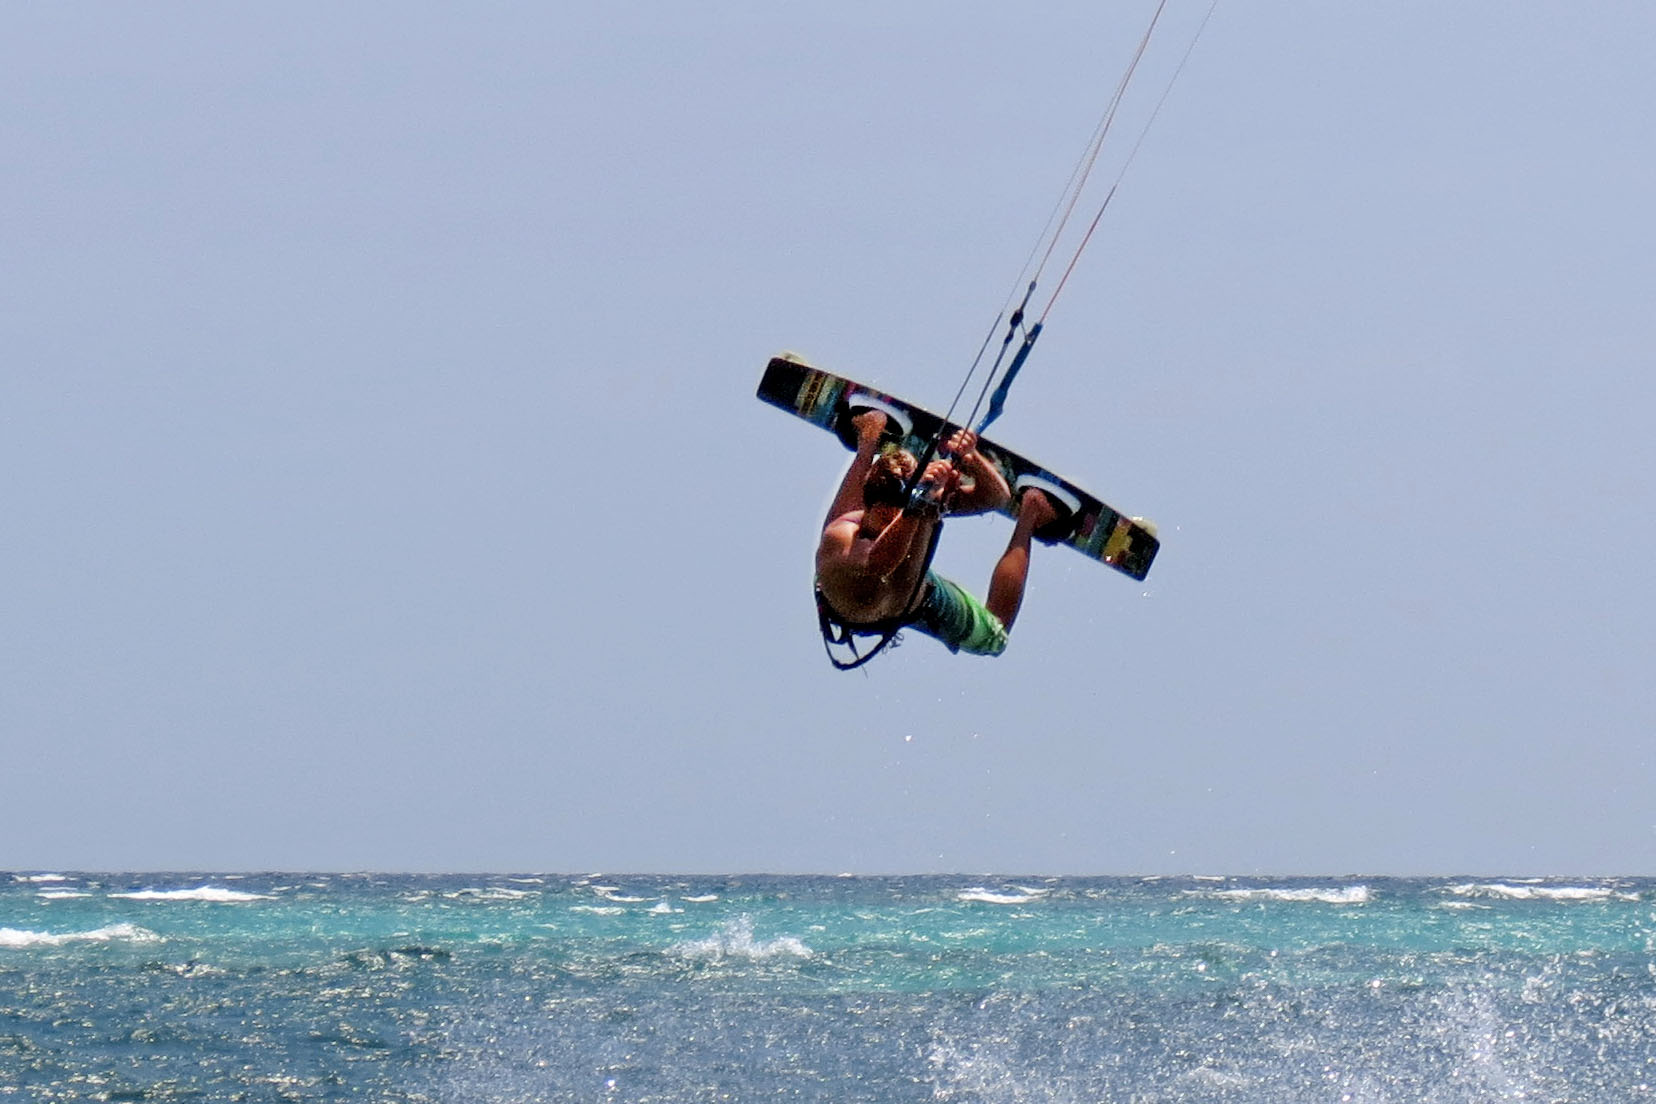 Kitesurf-Instructor Martin from Funboard Center Boracay shows the unhooked Ralley.